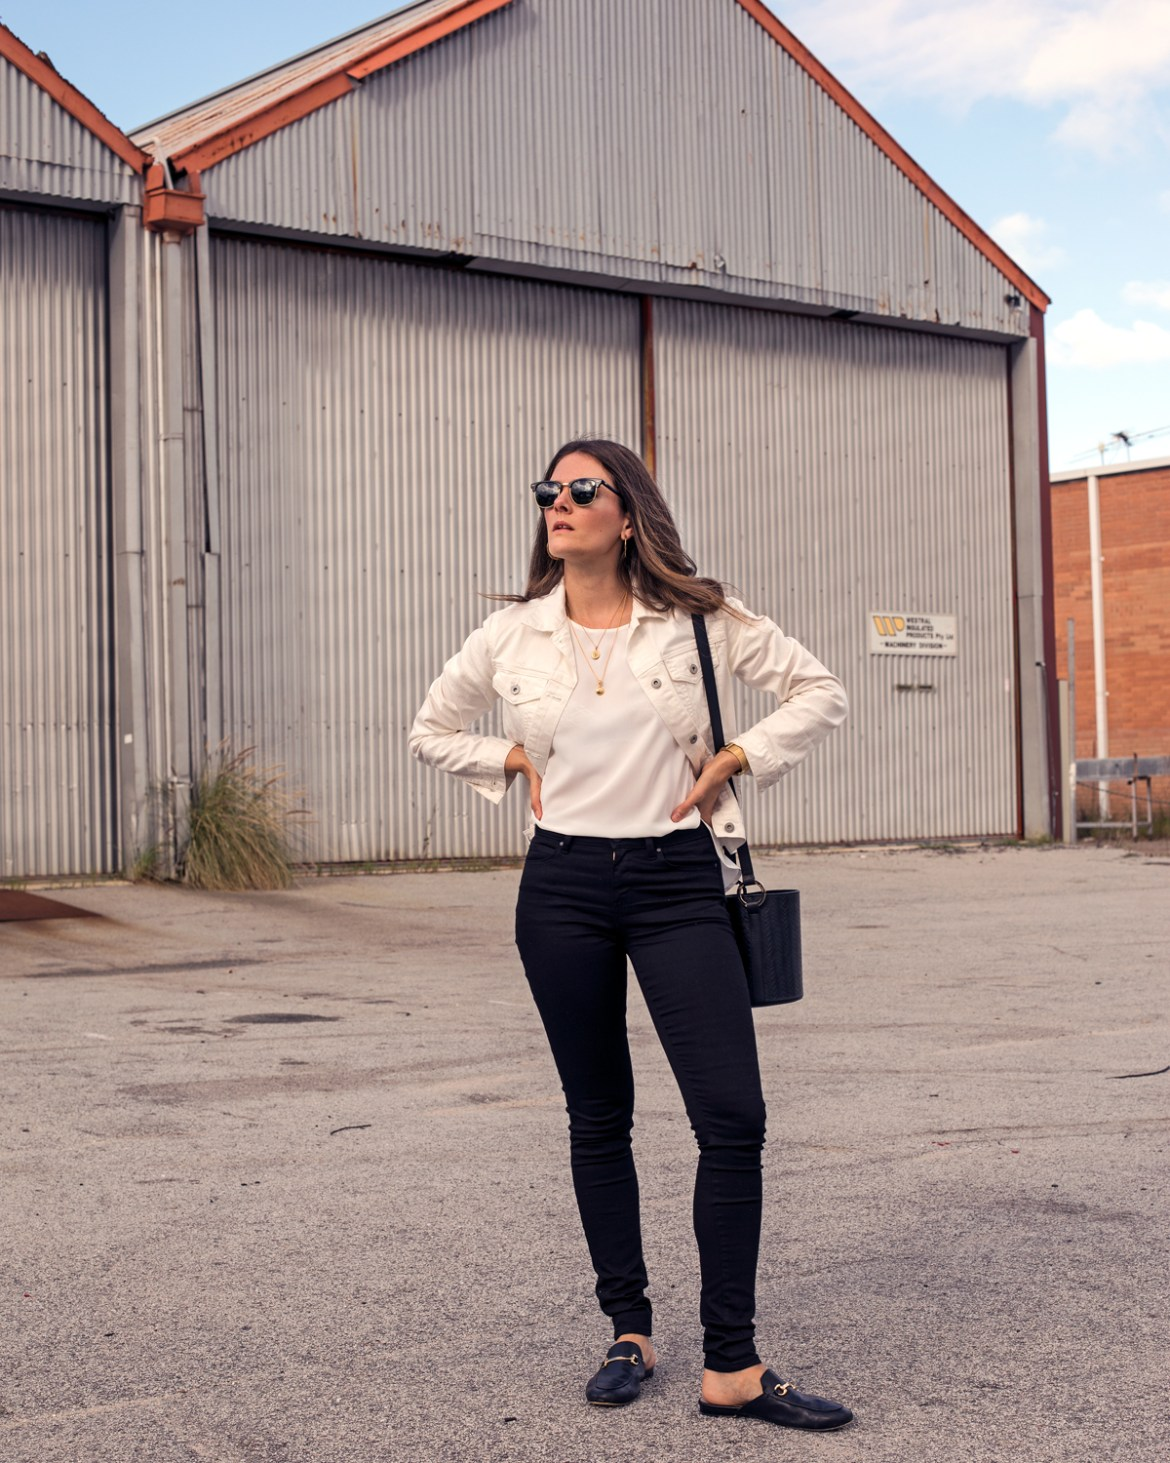 Uniqlo Perth is finally open! Fashion blogger Jenelle Witty from Inspiring Wit wearing Uniqlo rayon blouse with white denim jacket and black skinny jeans